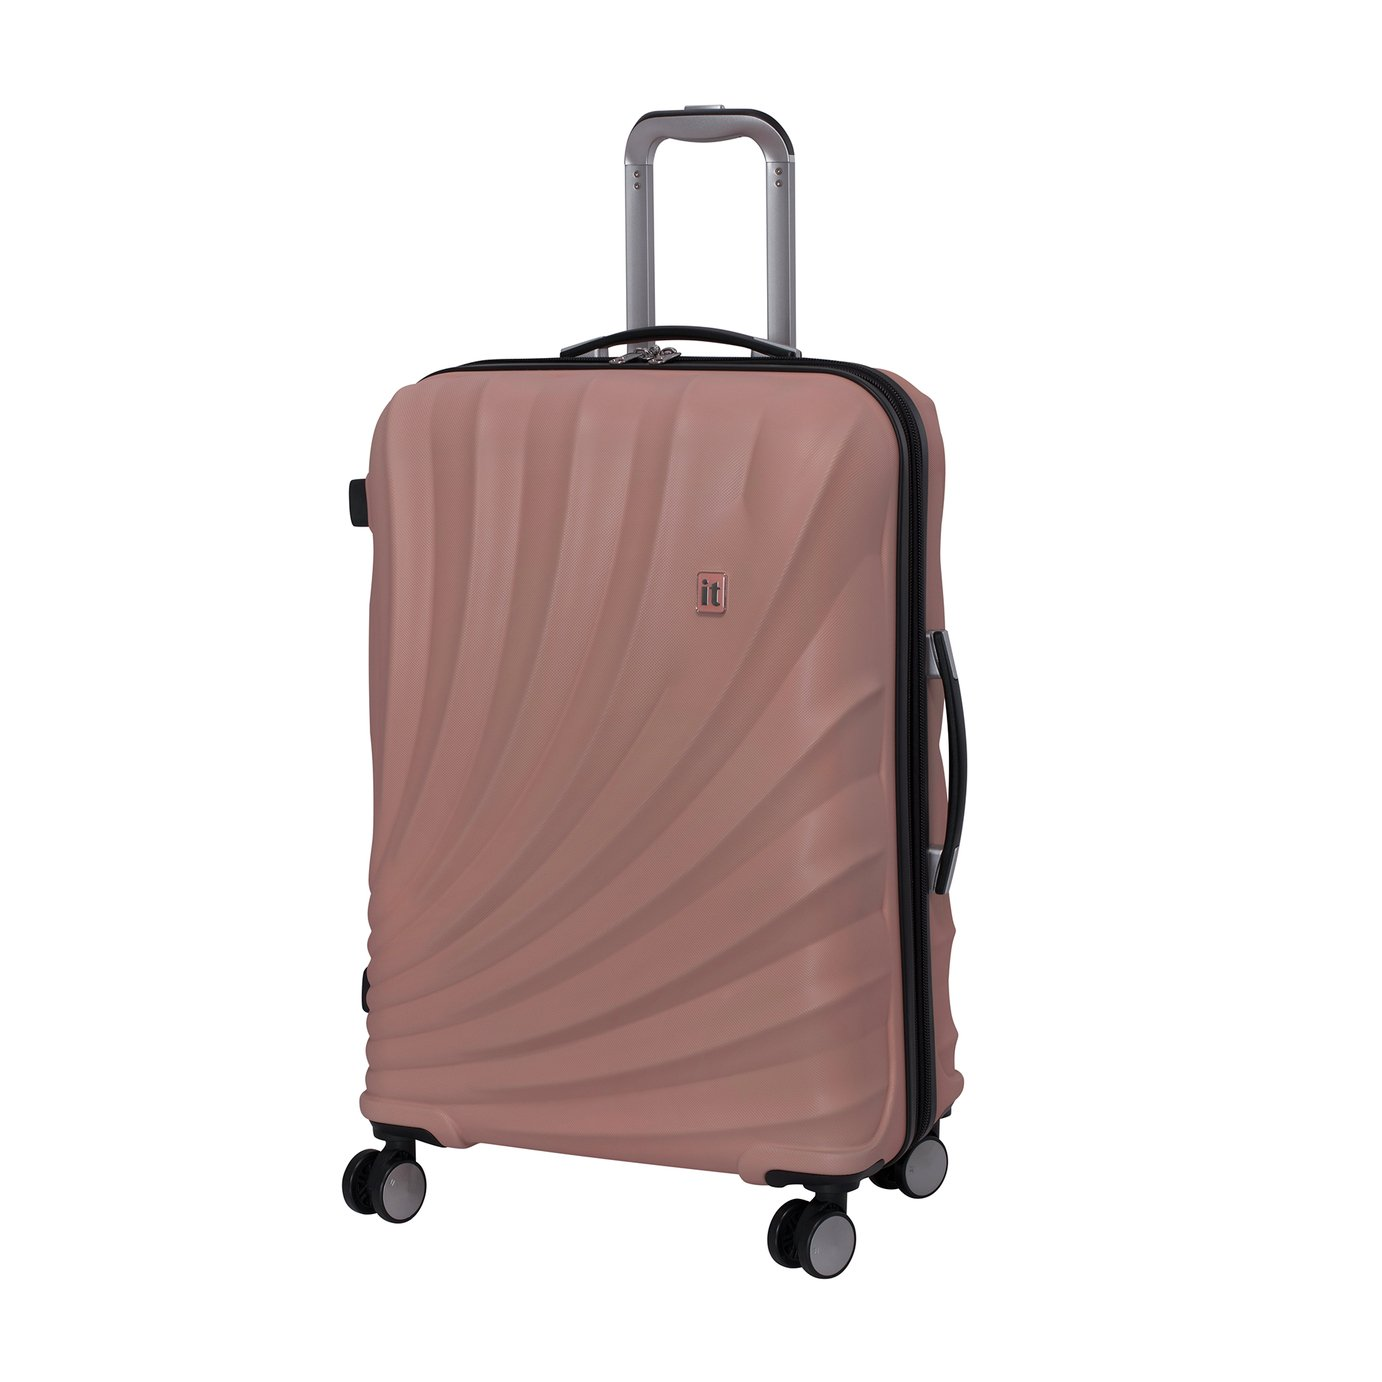 it Luggage Pagoda Medium Expandable 8 Wheel Suitcase - Pink